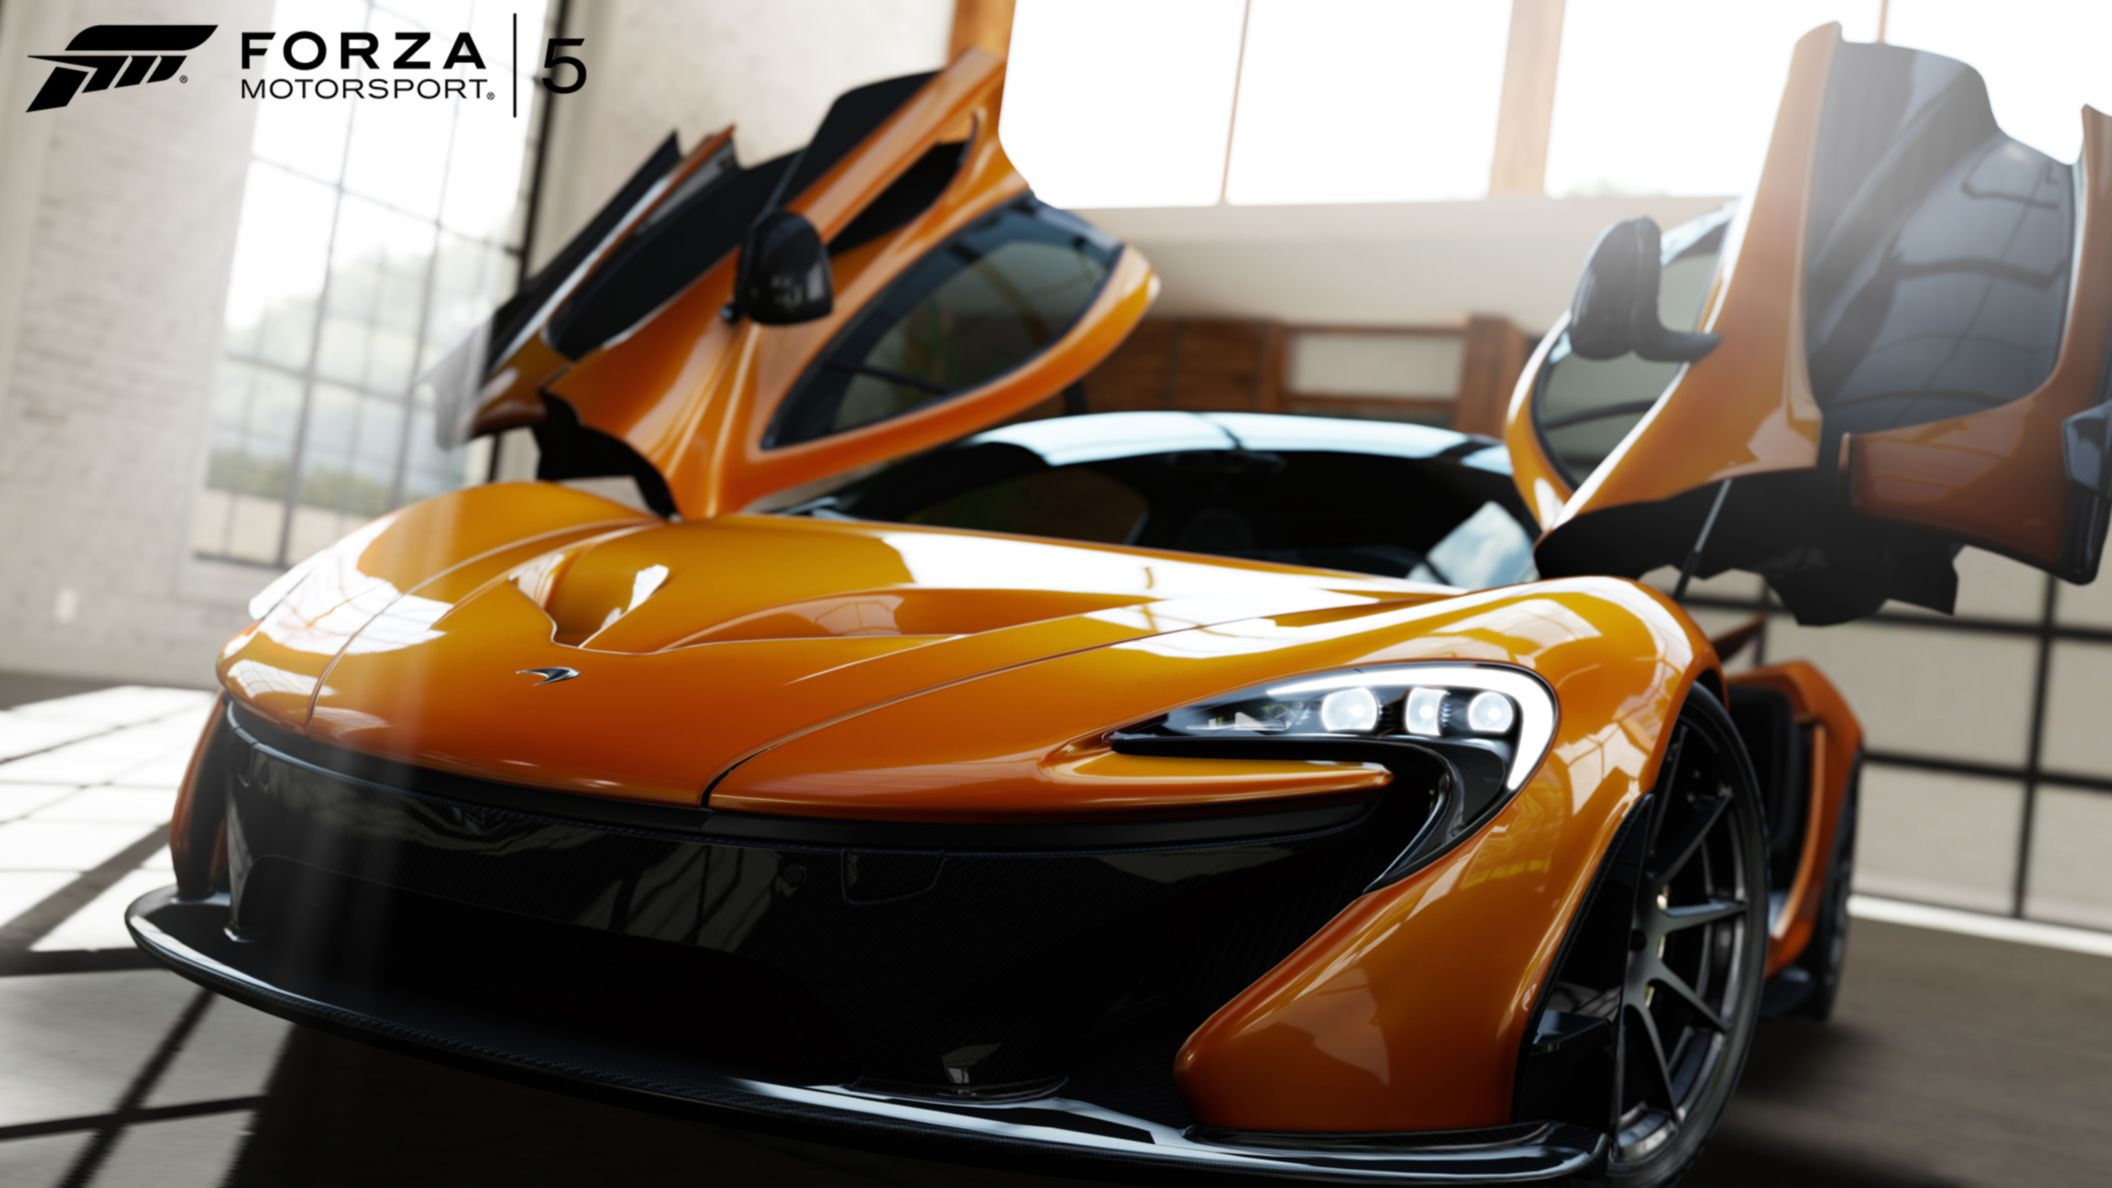 Download free HD Mclaren P1 In Forza Motorsport 5 HD Wallpaper, image